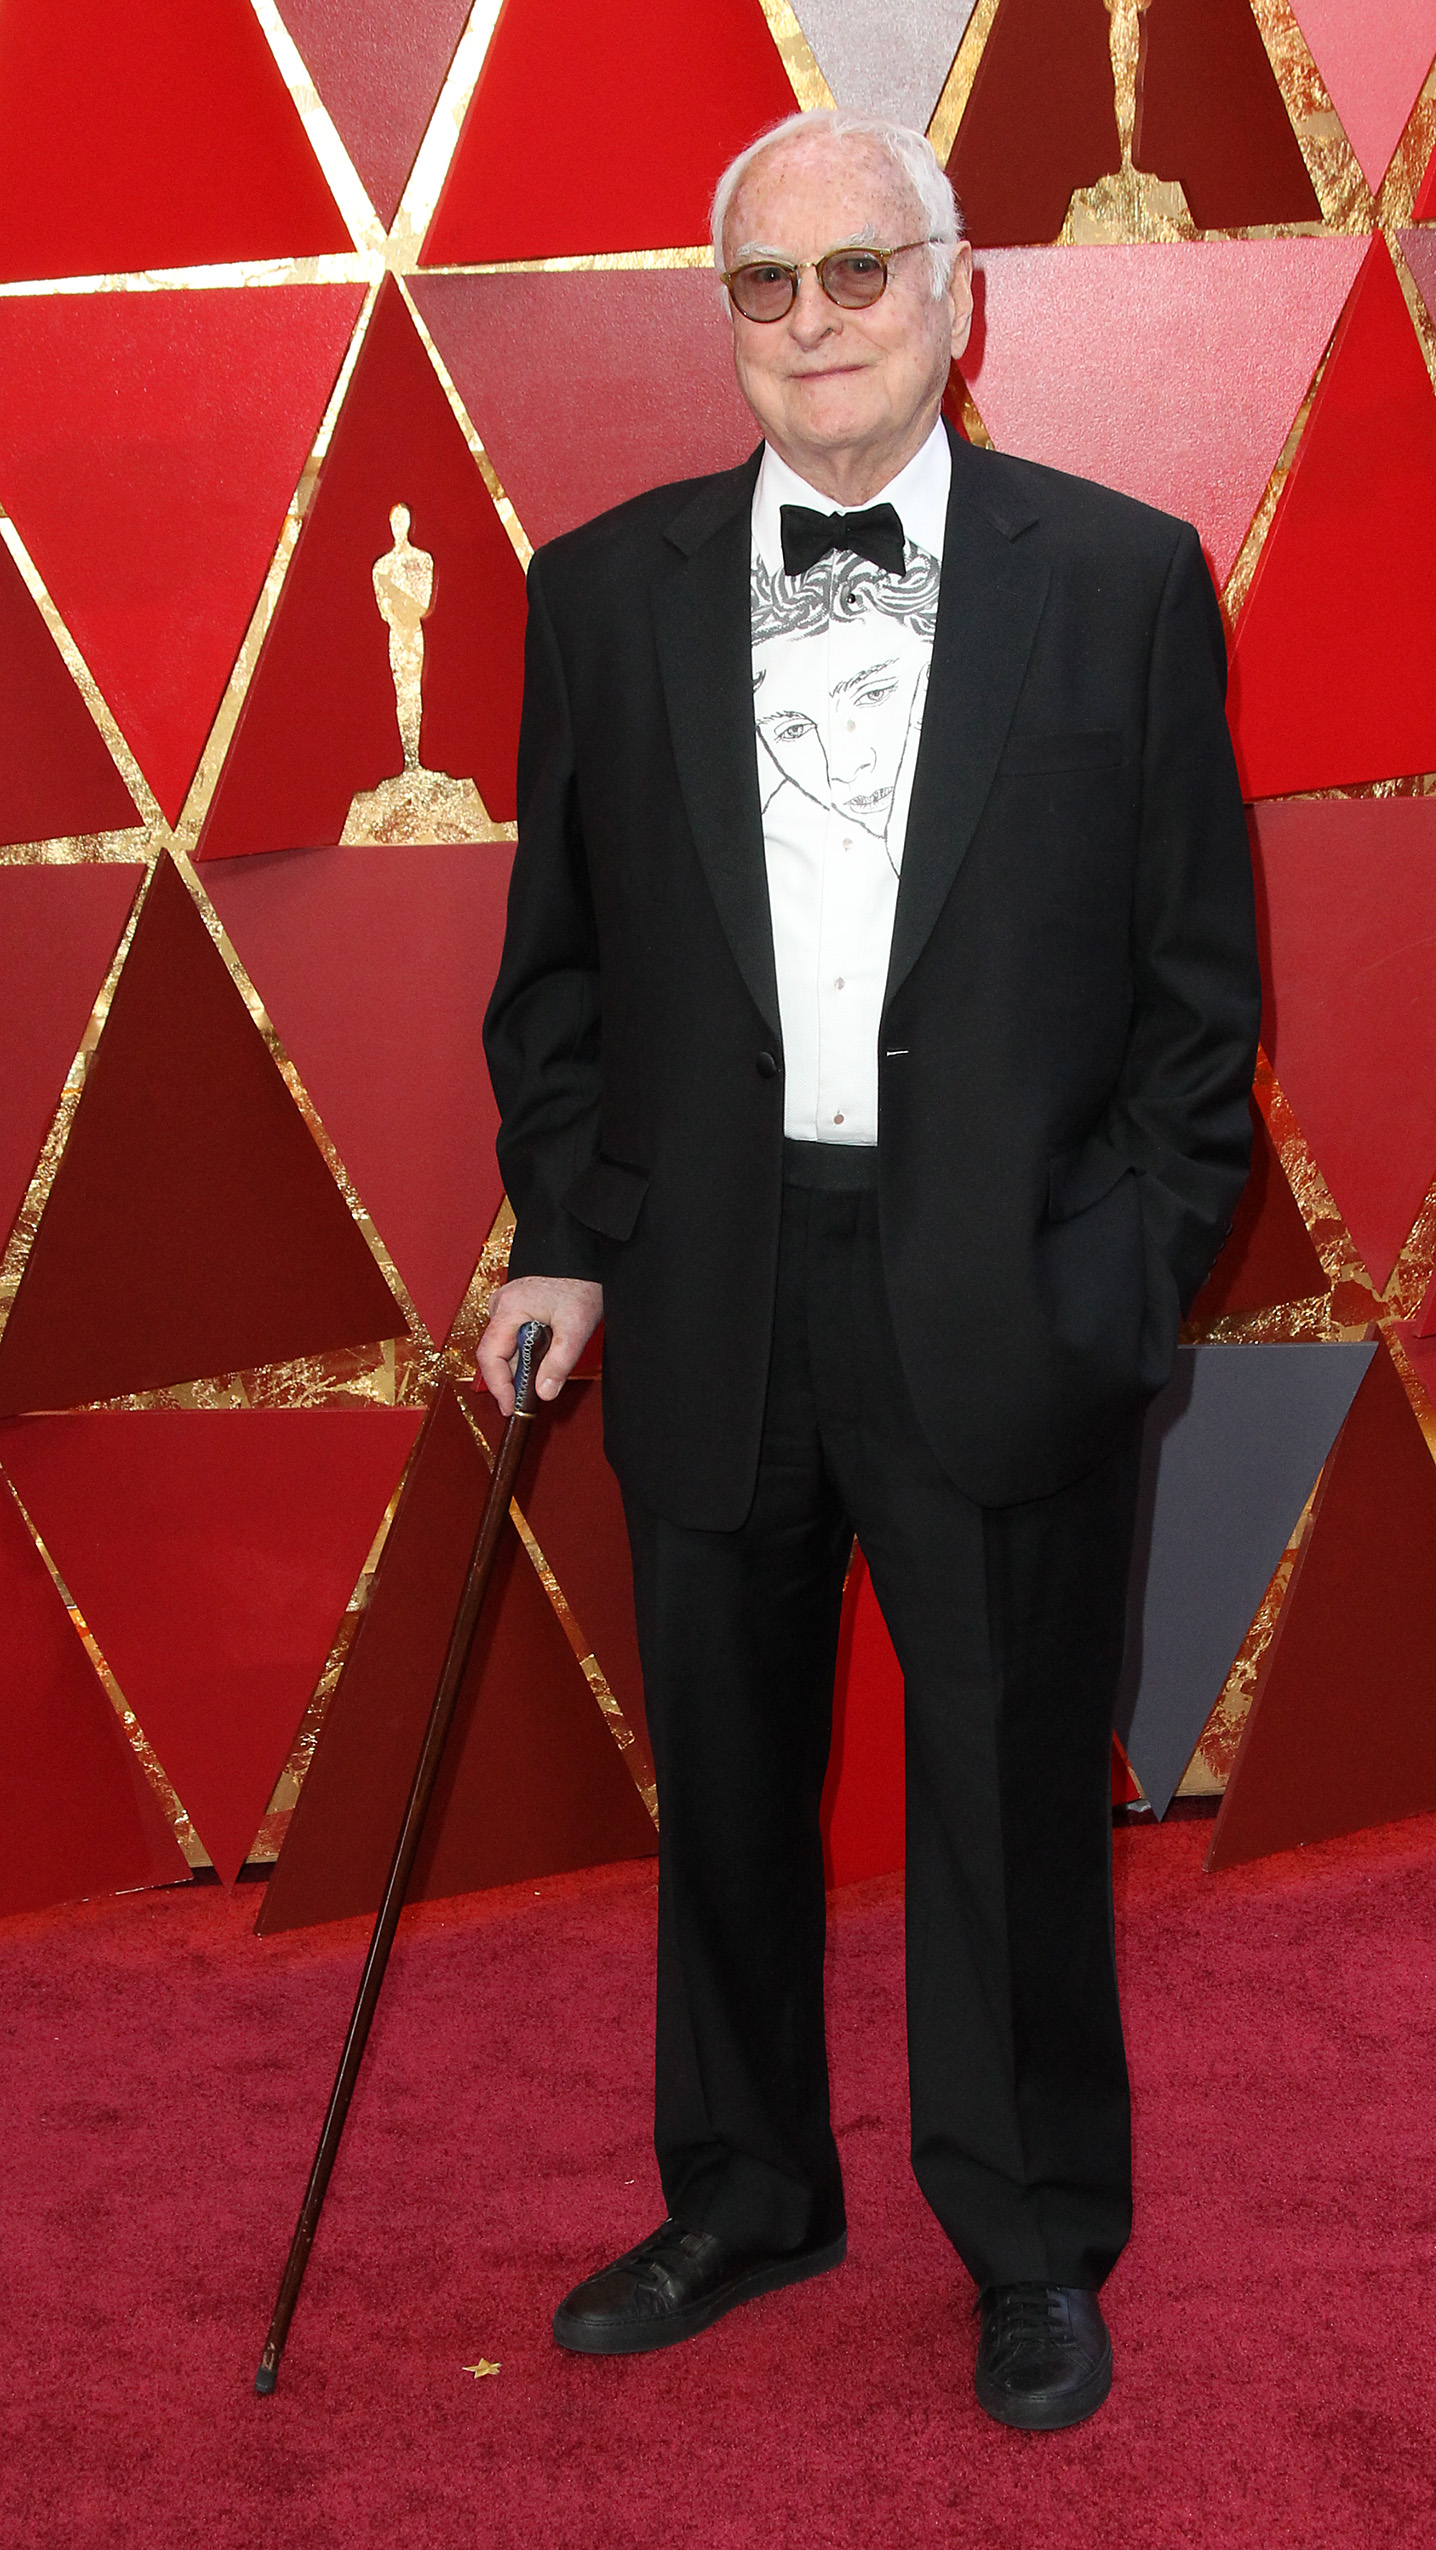 James IvoryWhere{&amp;nbsp;}arrives at the 90th Annual Academy Awards (Oscars) held at the Dolby Theater in Hollywood, California. (Image: Adriana M. Barraza/WENN.com) <p></p>